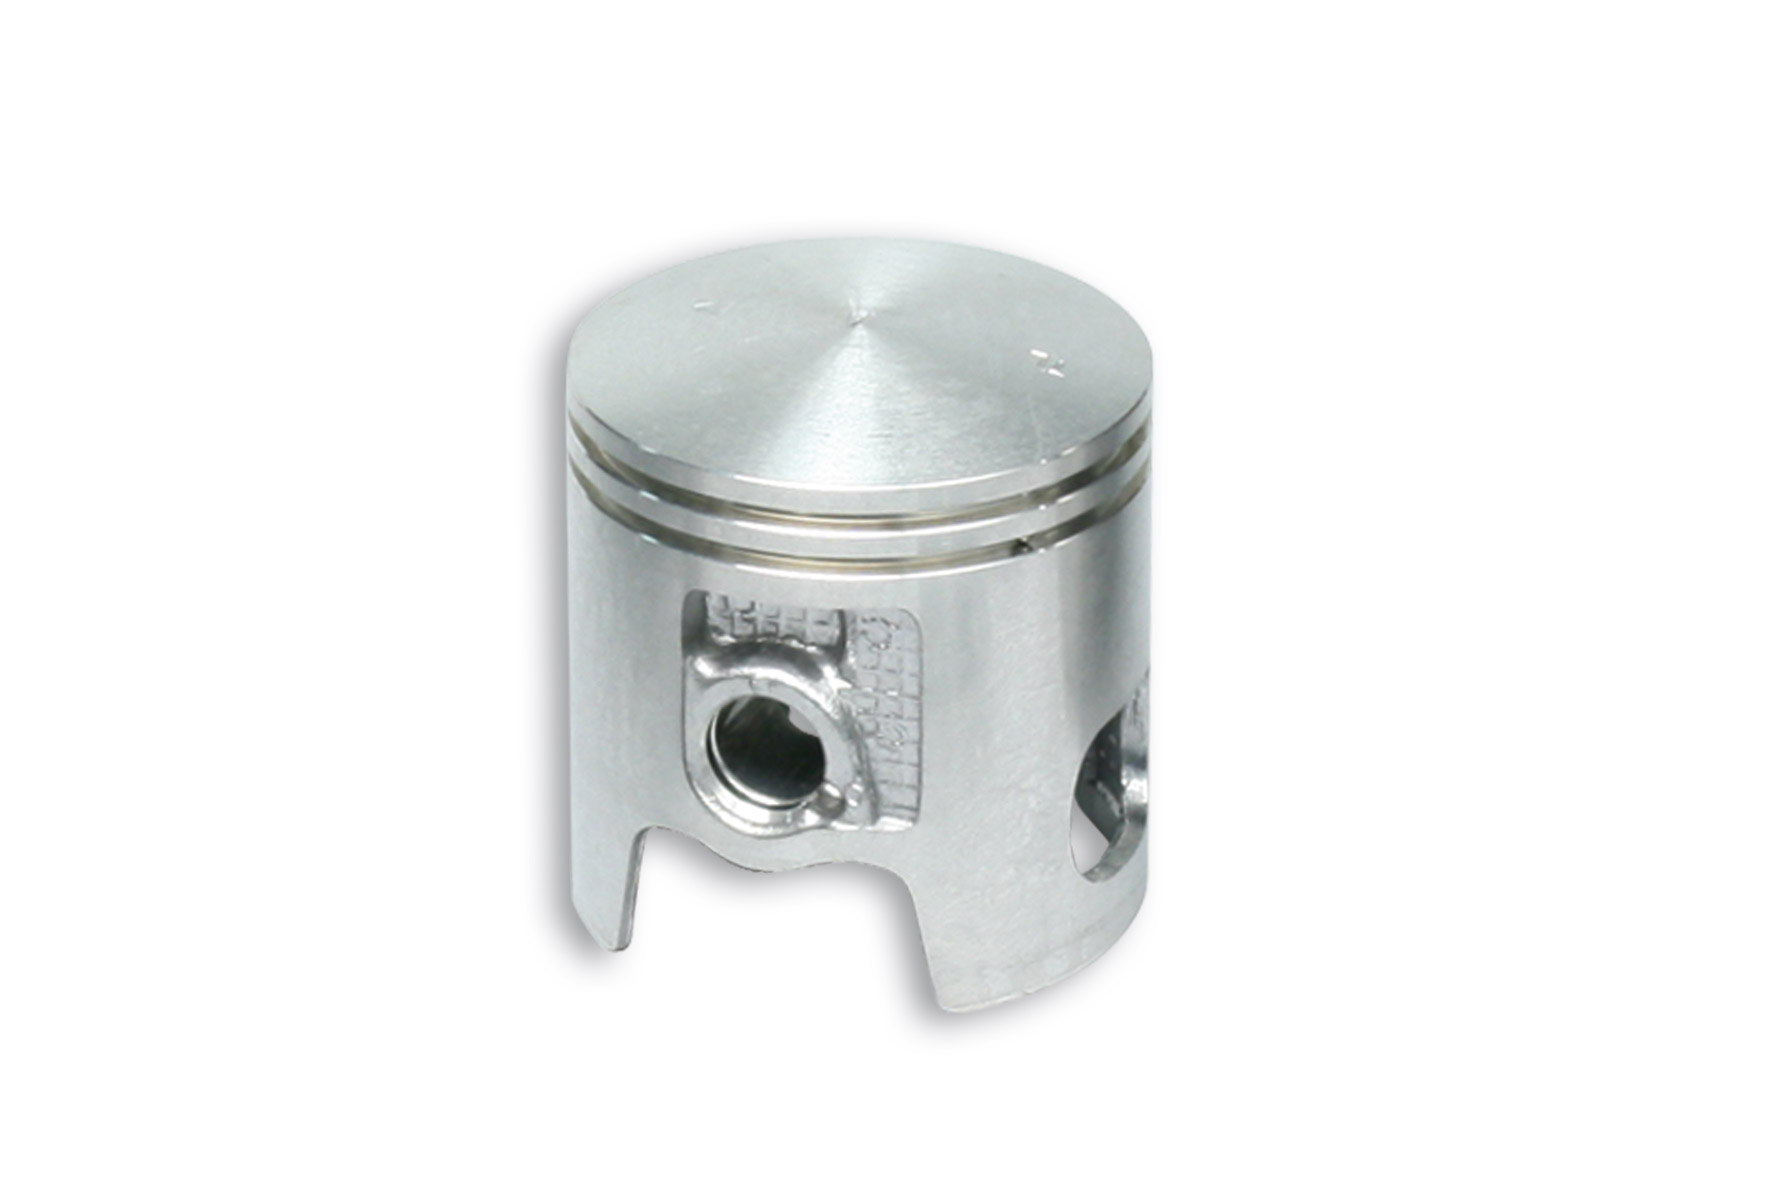 PISTON Ø 55 0 pin Ø 15 semi. ring  1